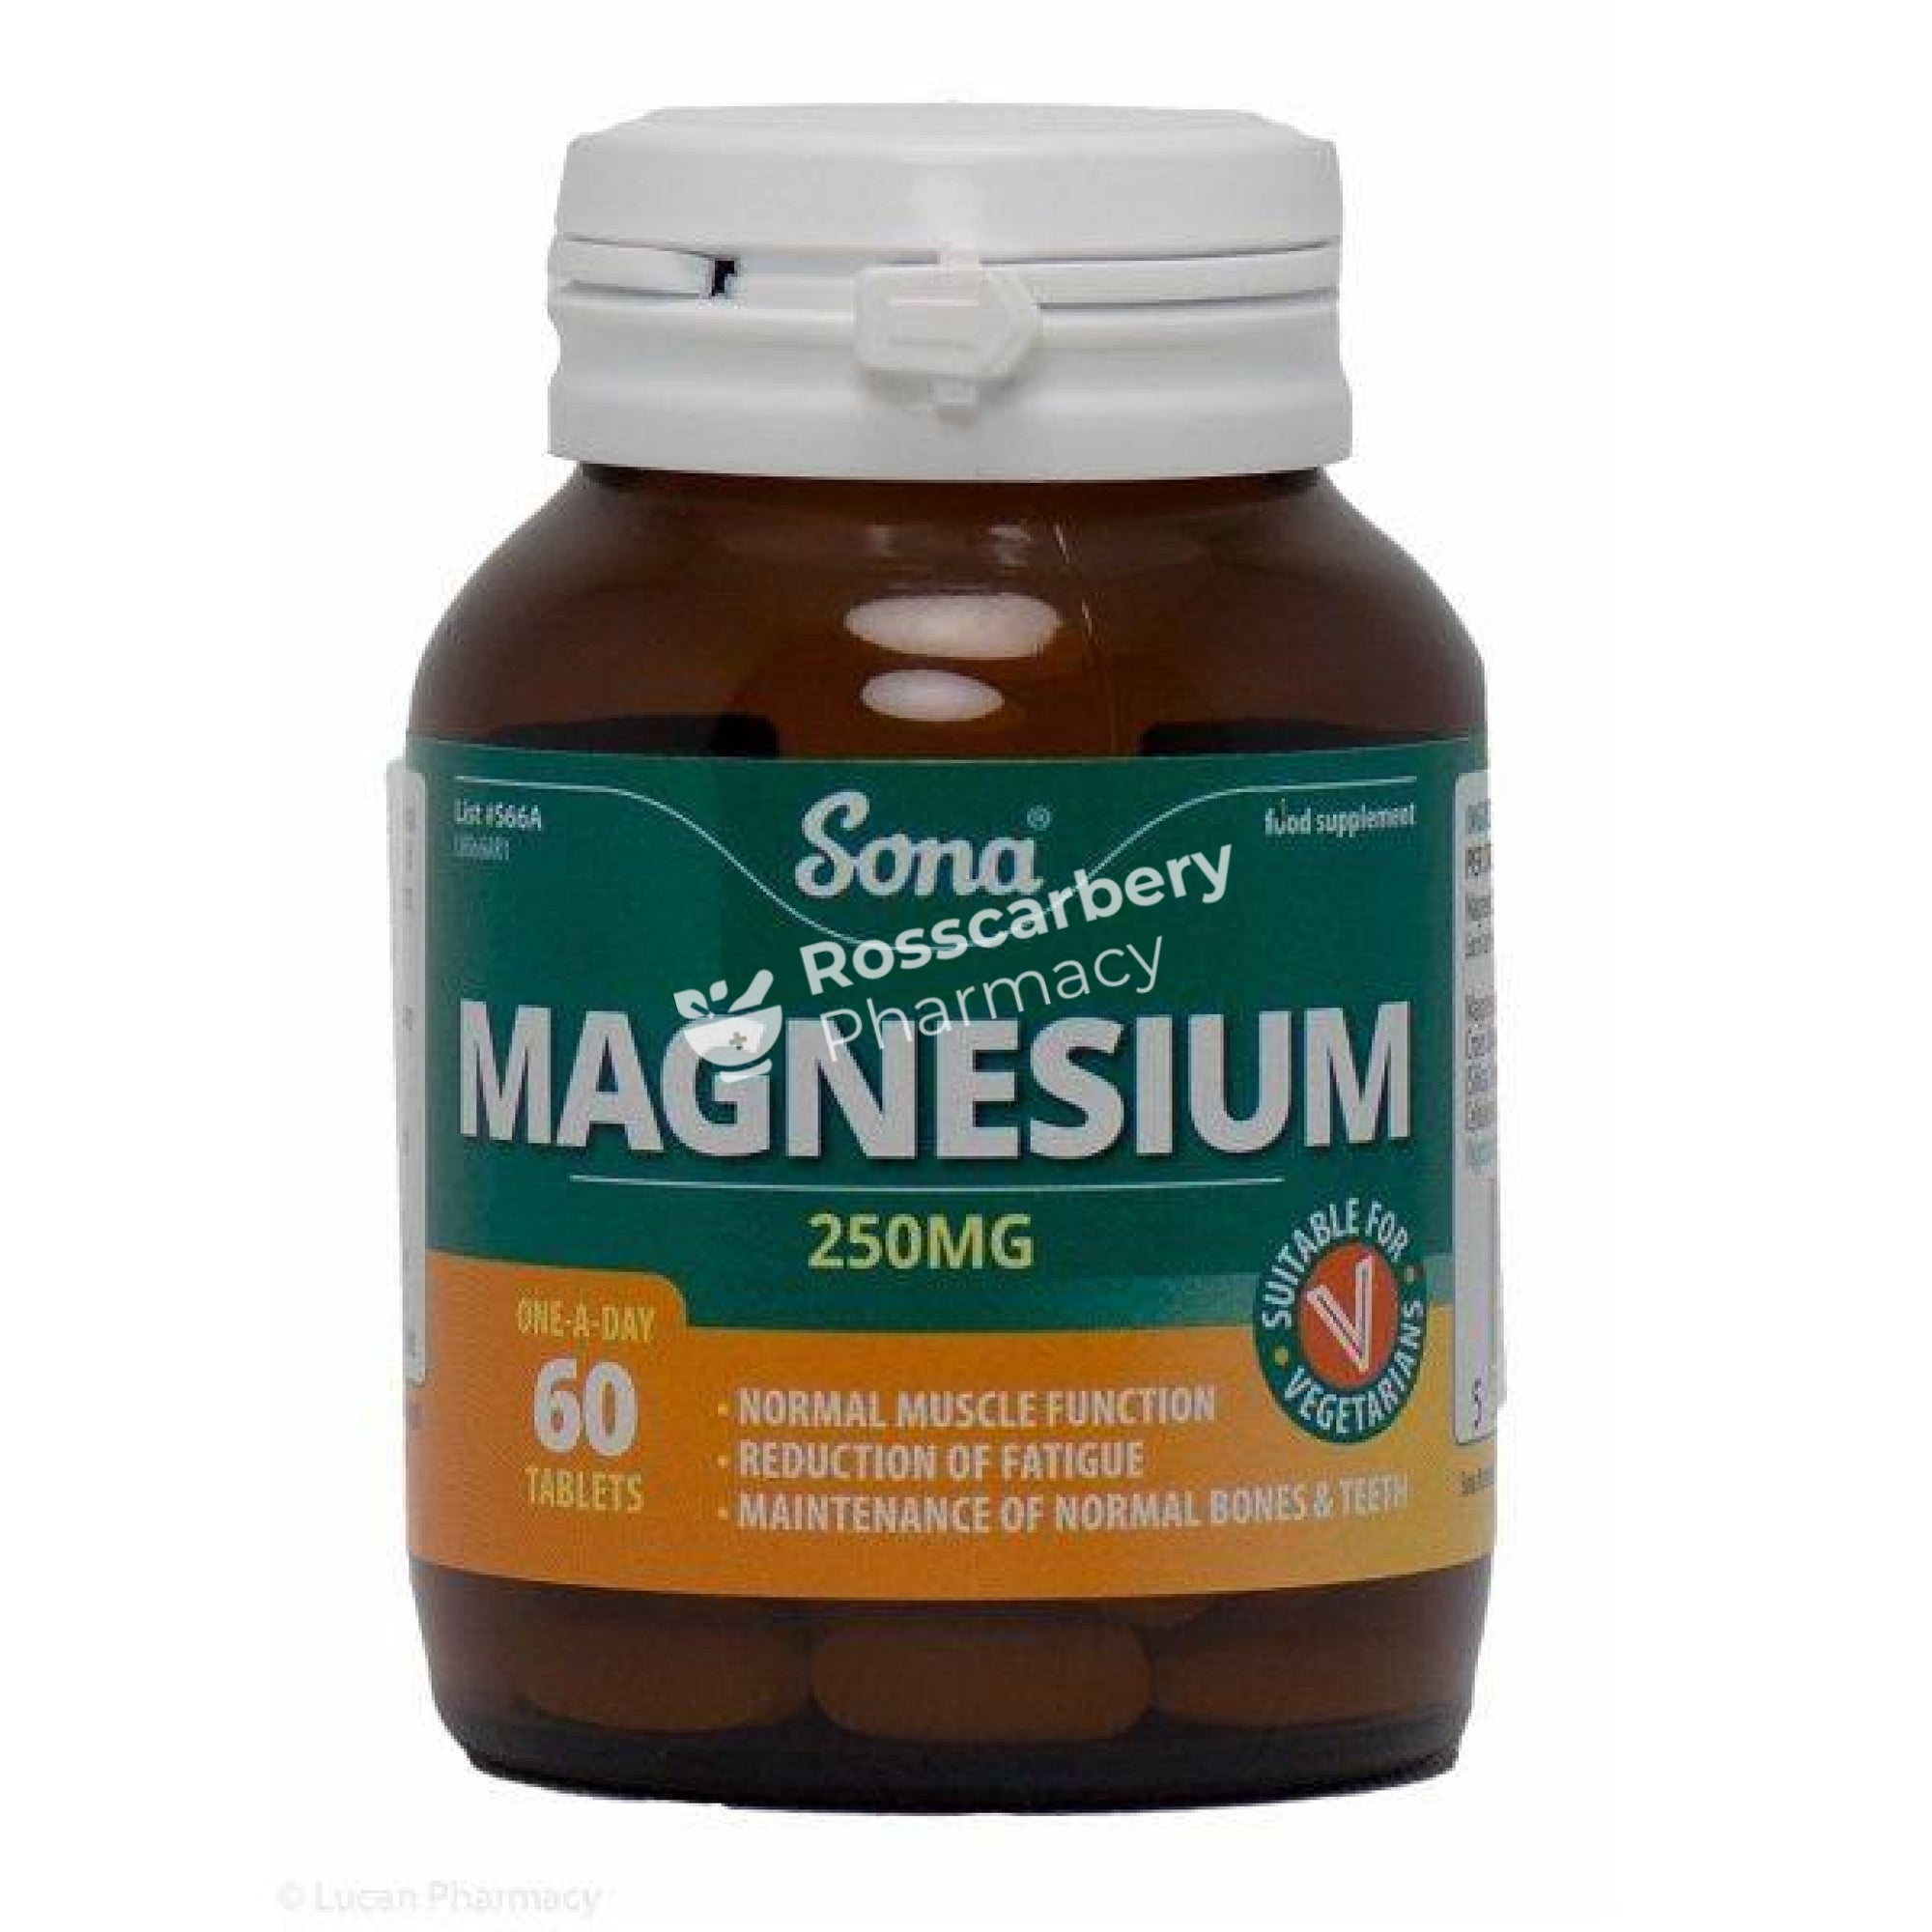 Sona - Magnesium 250Mg One-A-Day Energy & Wellbeing